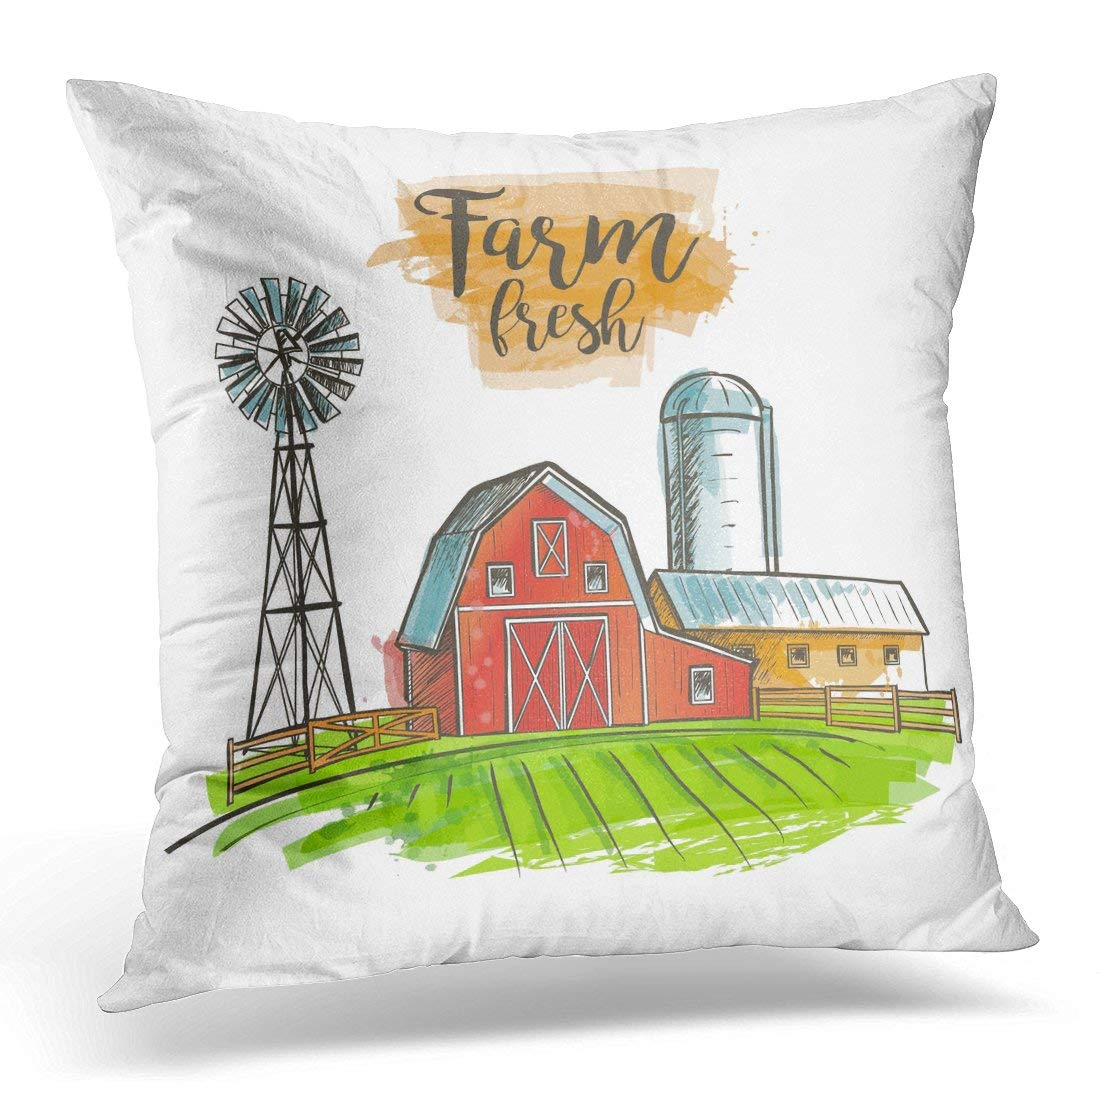 arhome red silo farm windmill barn fence house field vintage green sunrise throw pillow case pillow cover sofa home decor 16x16 inches